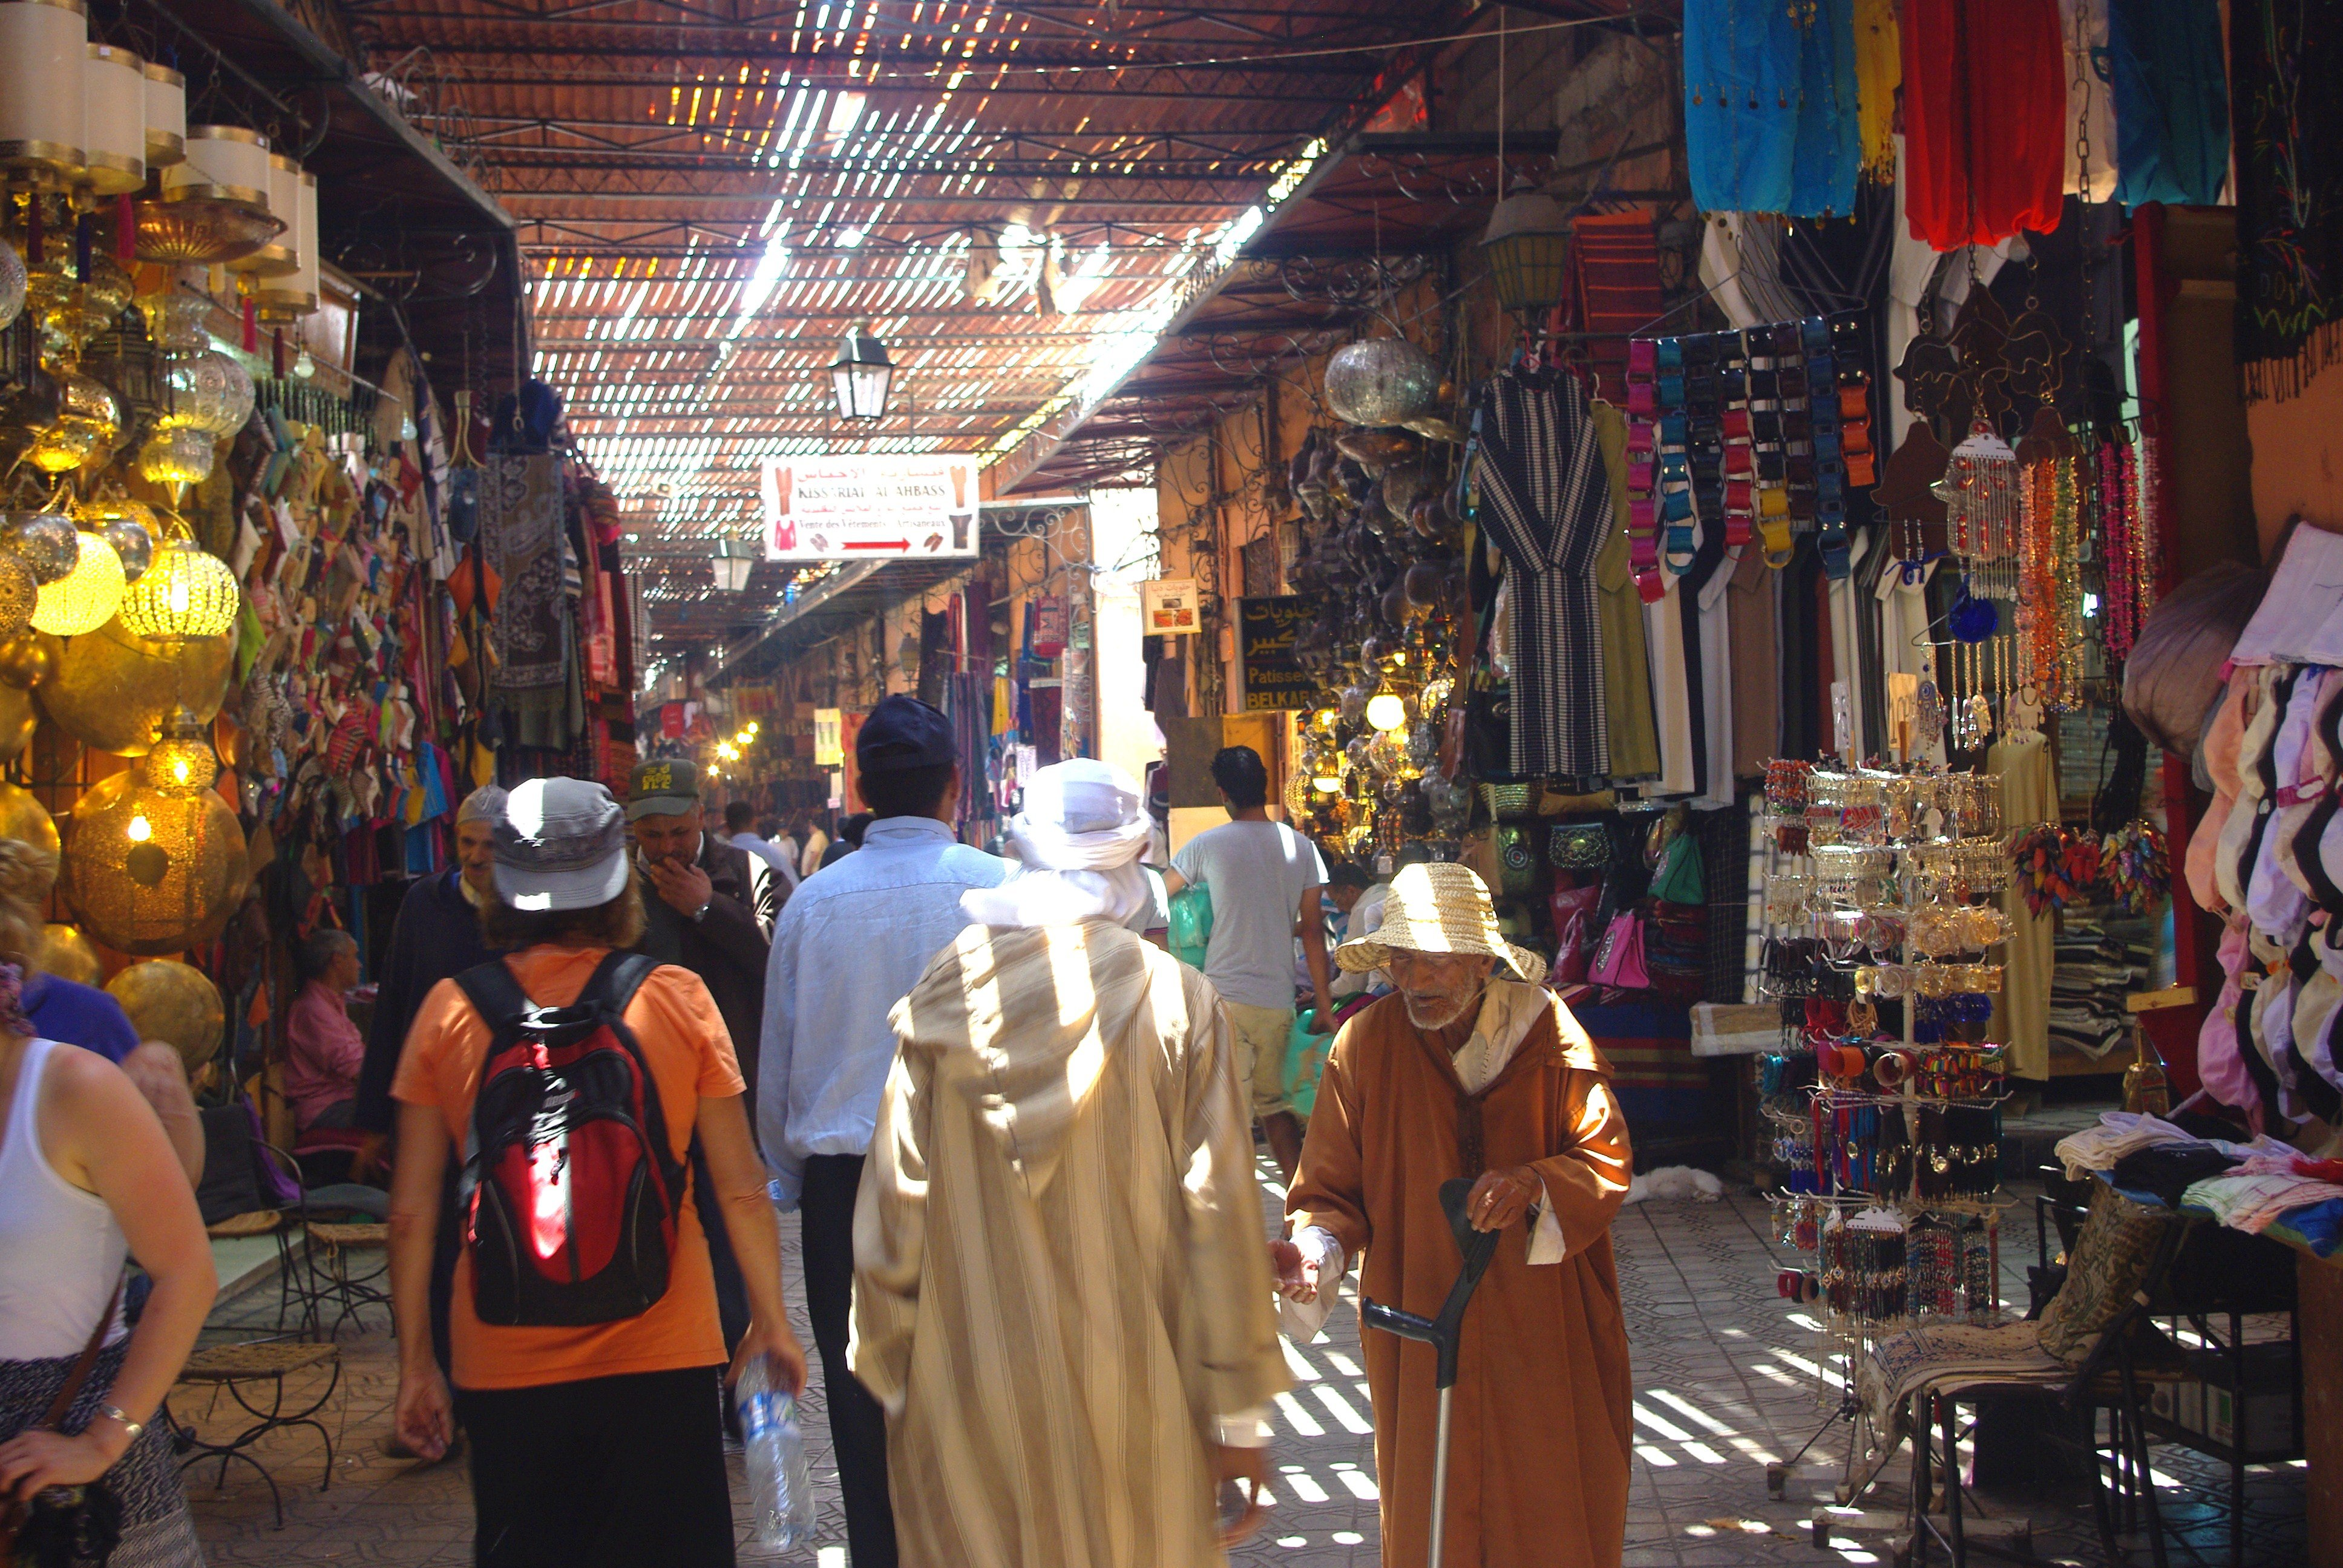 Walking in the Souk at Marrakech